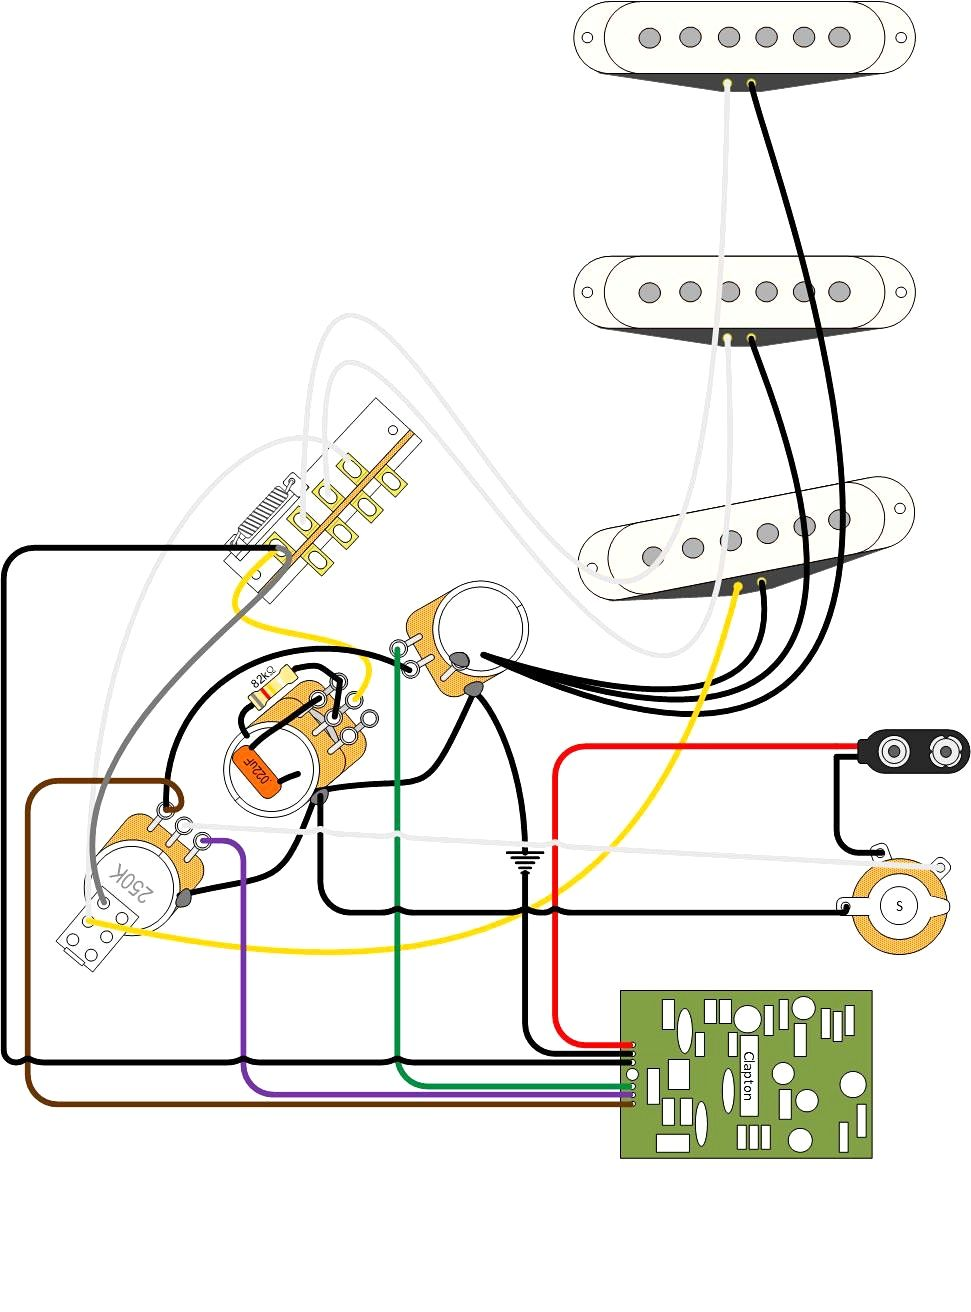 Fender S1 Wiring Diagram from i.pinimg.com